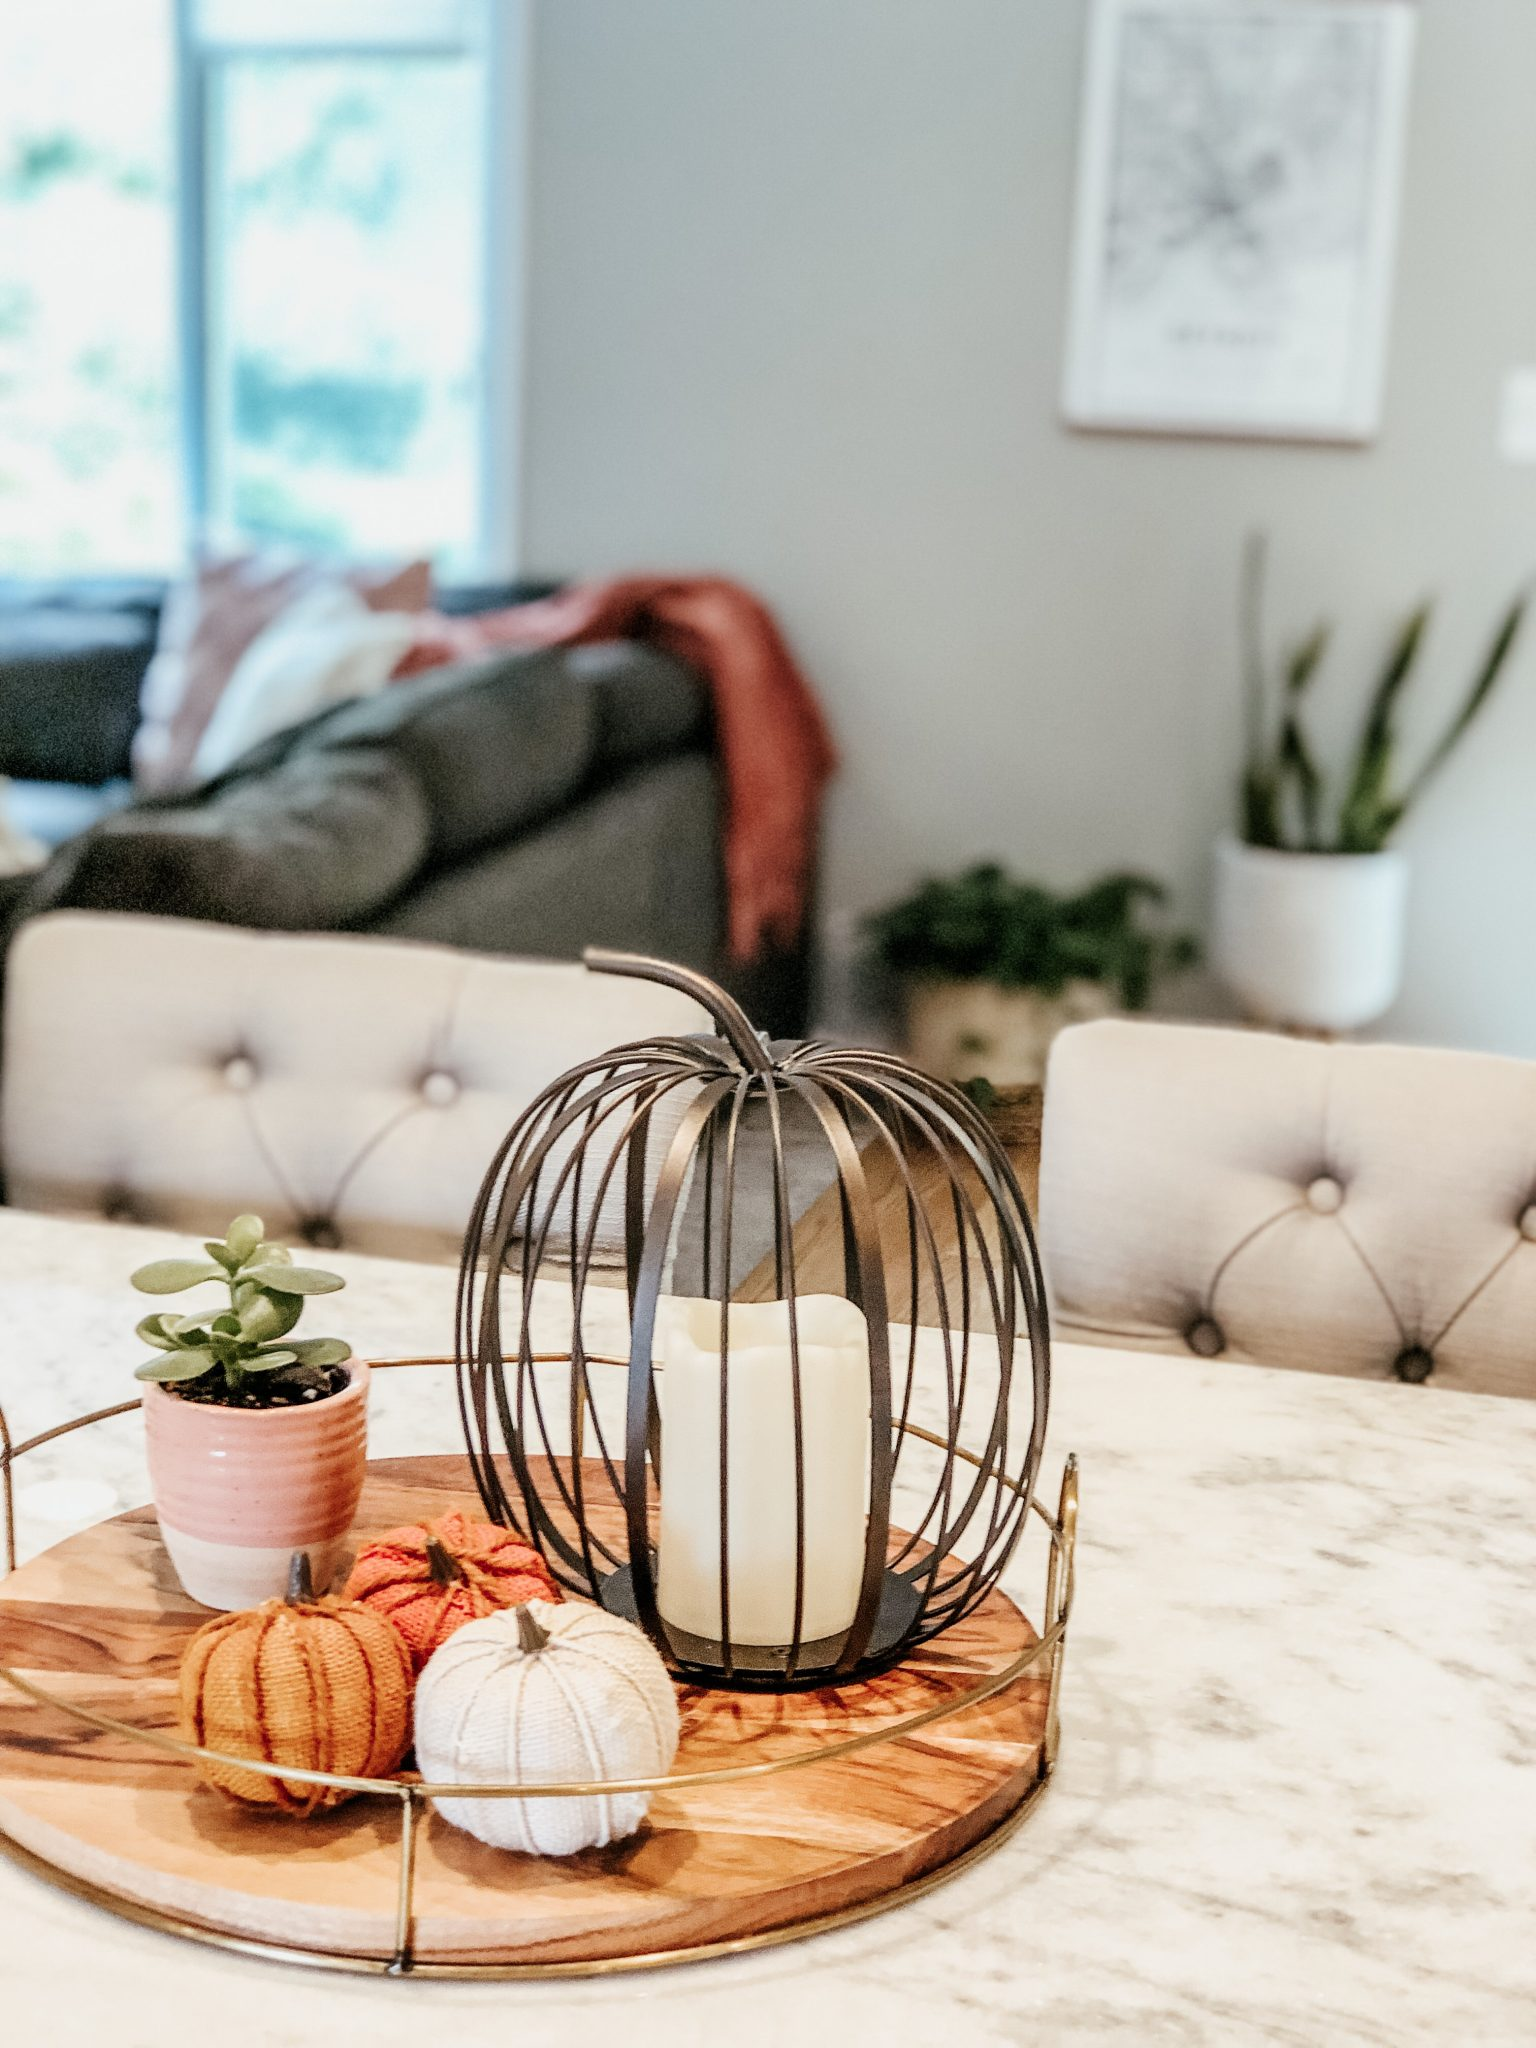 Fall Decor Home Tour | Daily Splendor Life and Style Blog | fall dining room decor #pumpkins #fallcenterpiece #succulentpumpkins #cozyfall #metalpumpkins